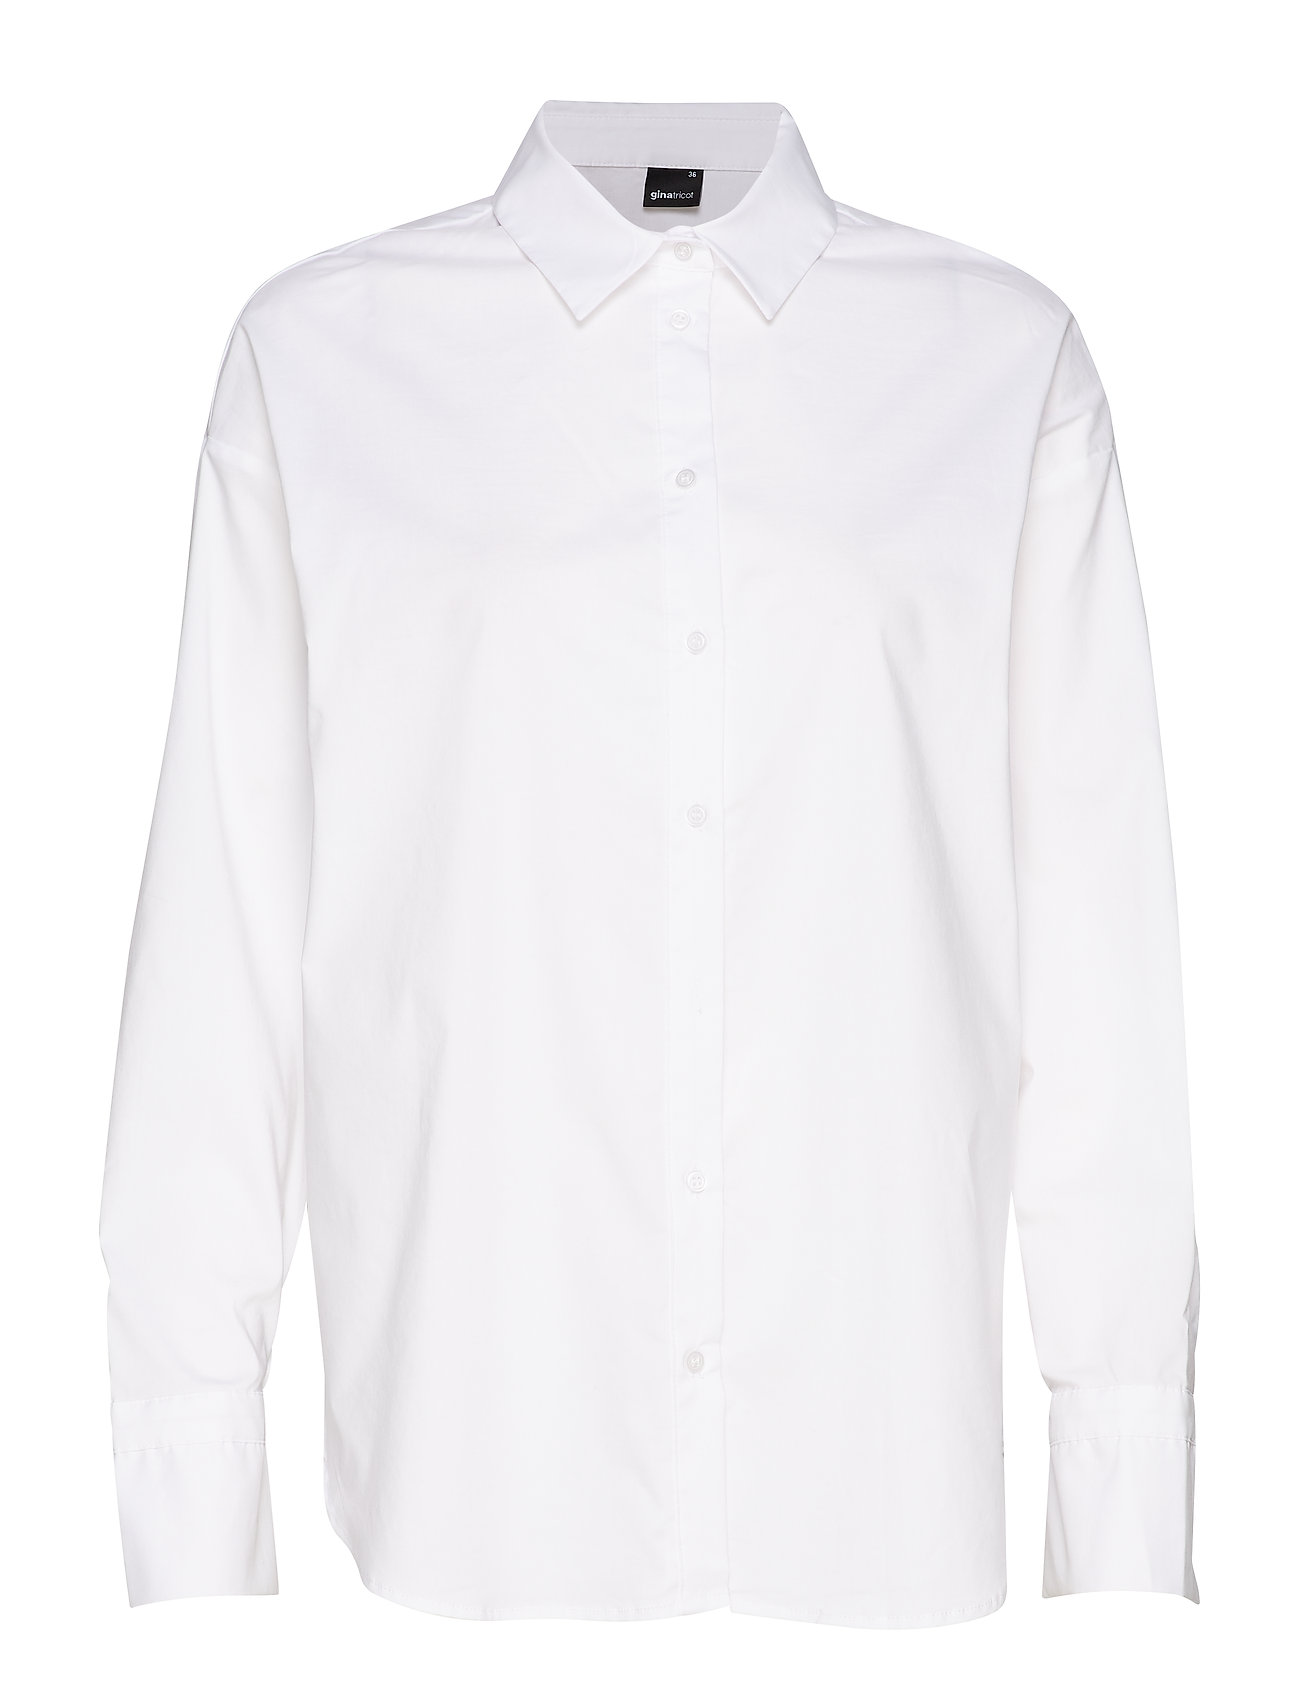 Gina Tricot Missy shirt - OFFWHITE